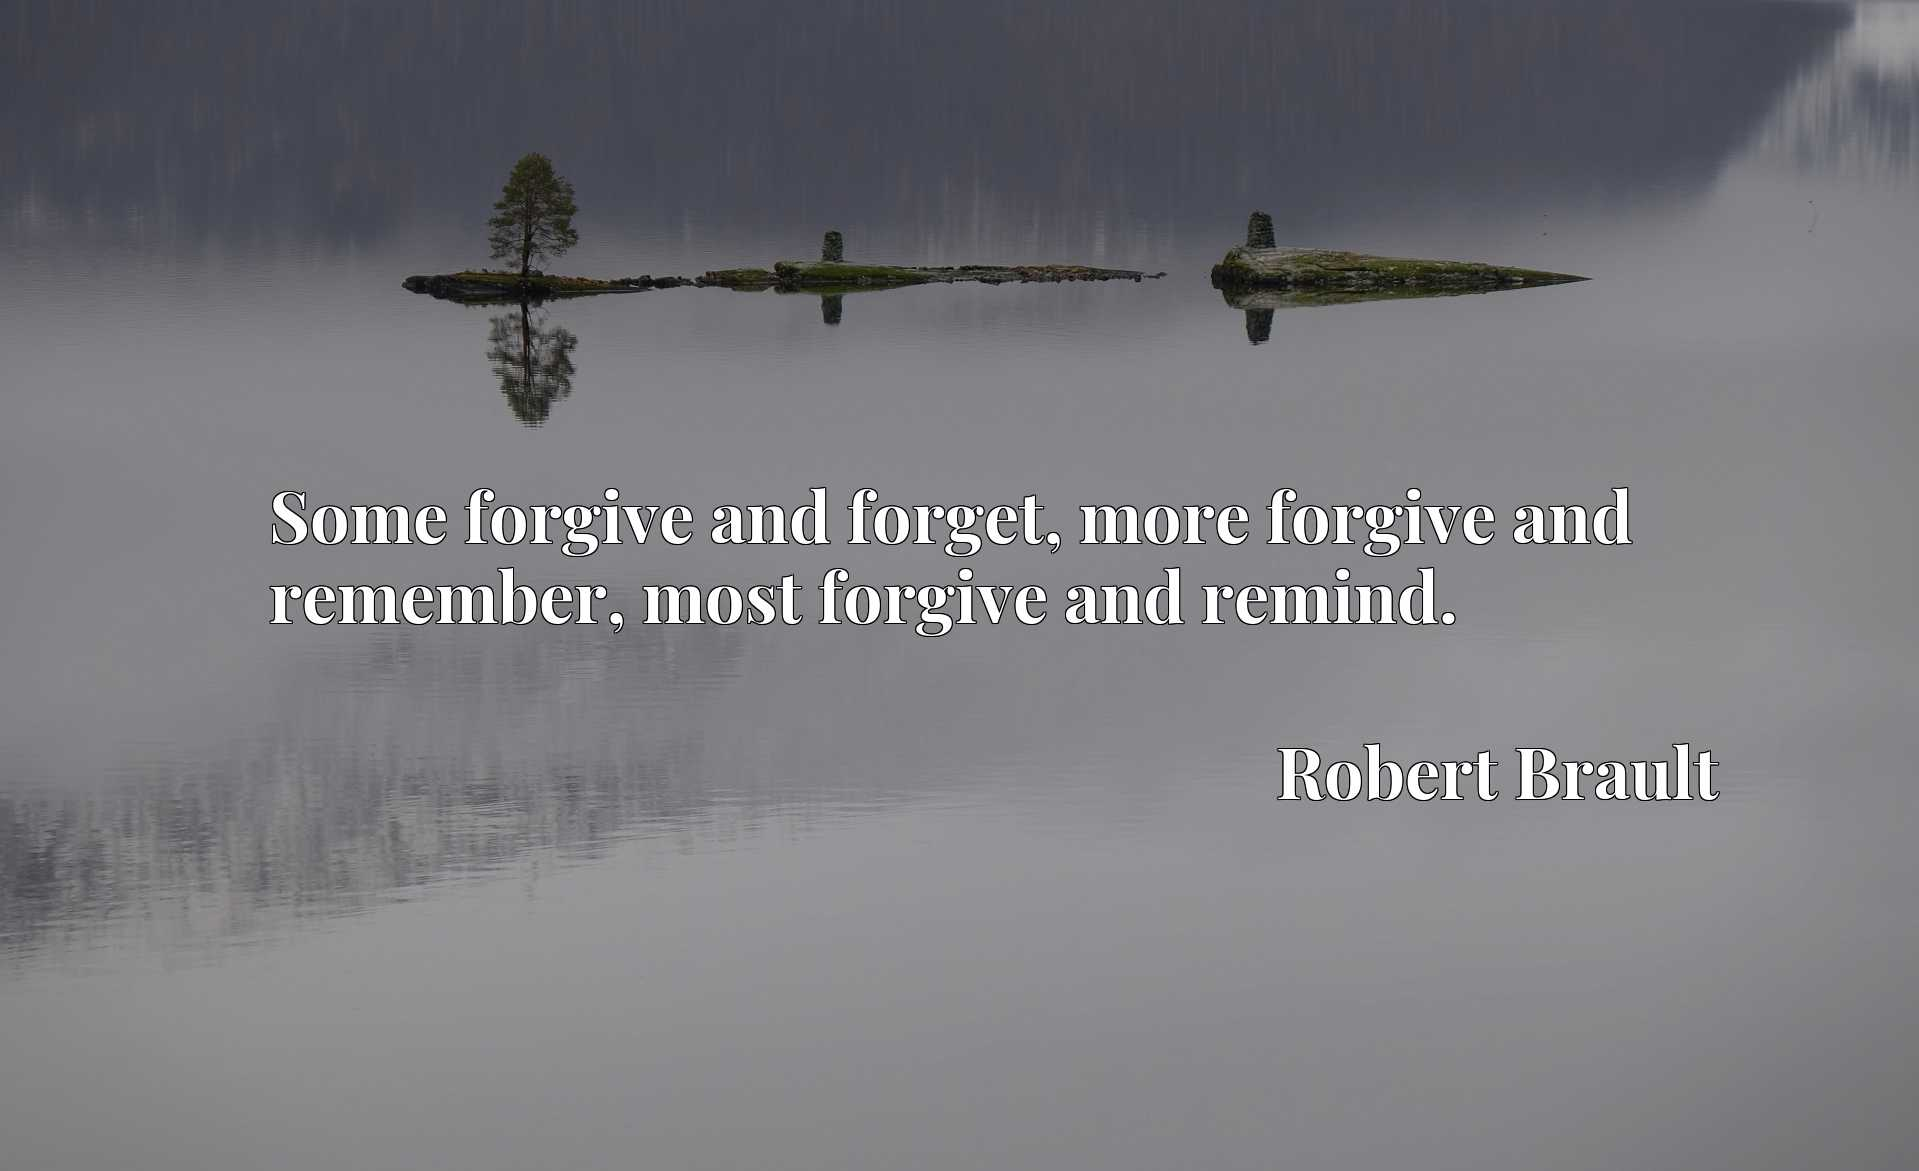 Some forgive and forget, more forgive and remember, most forgive and remind.